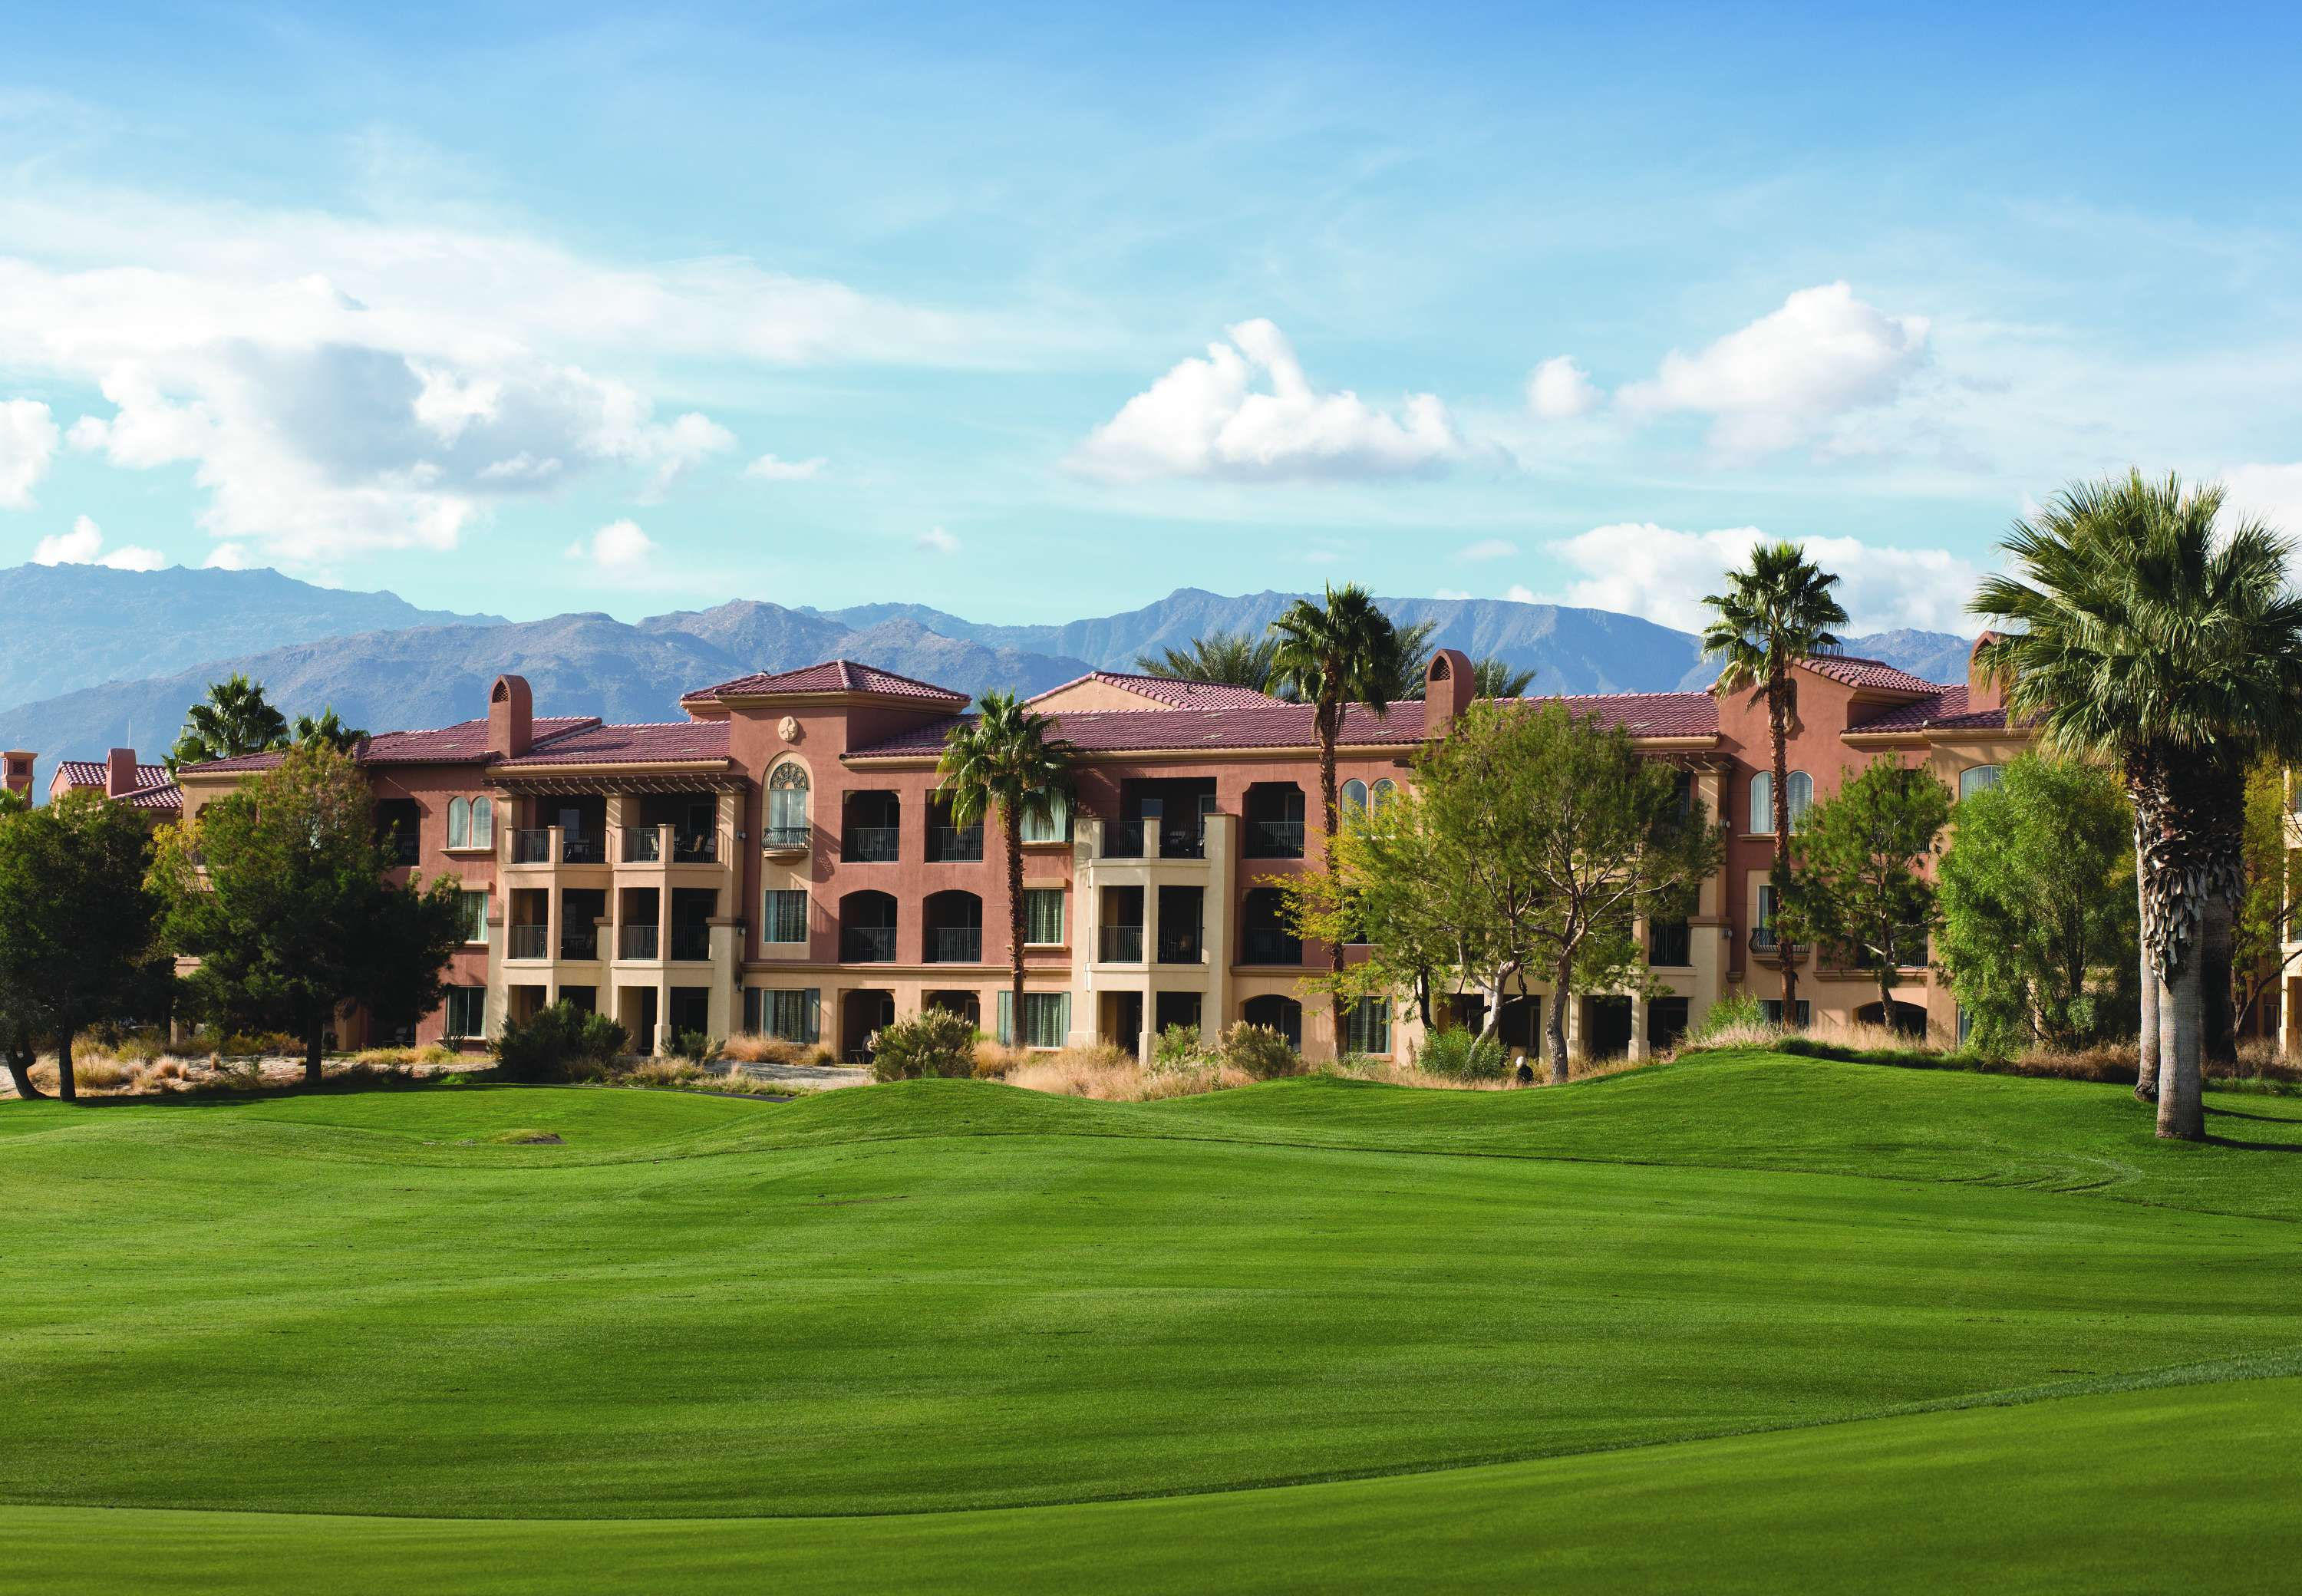 Marriott 39 s shadow ridge i the villages in palm desert ca - Marriott shadow ridge 2 bedroom villa ...